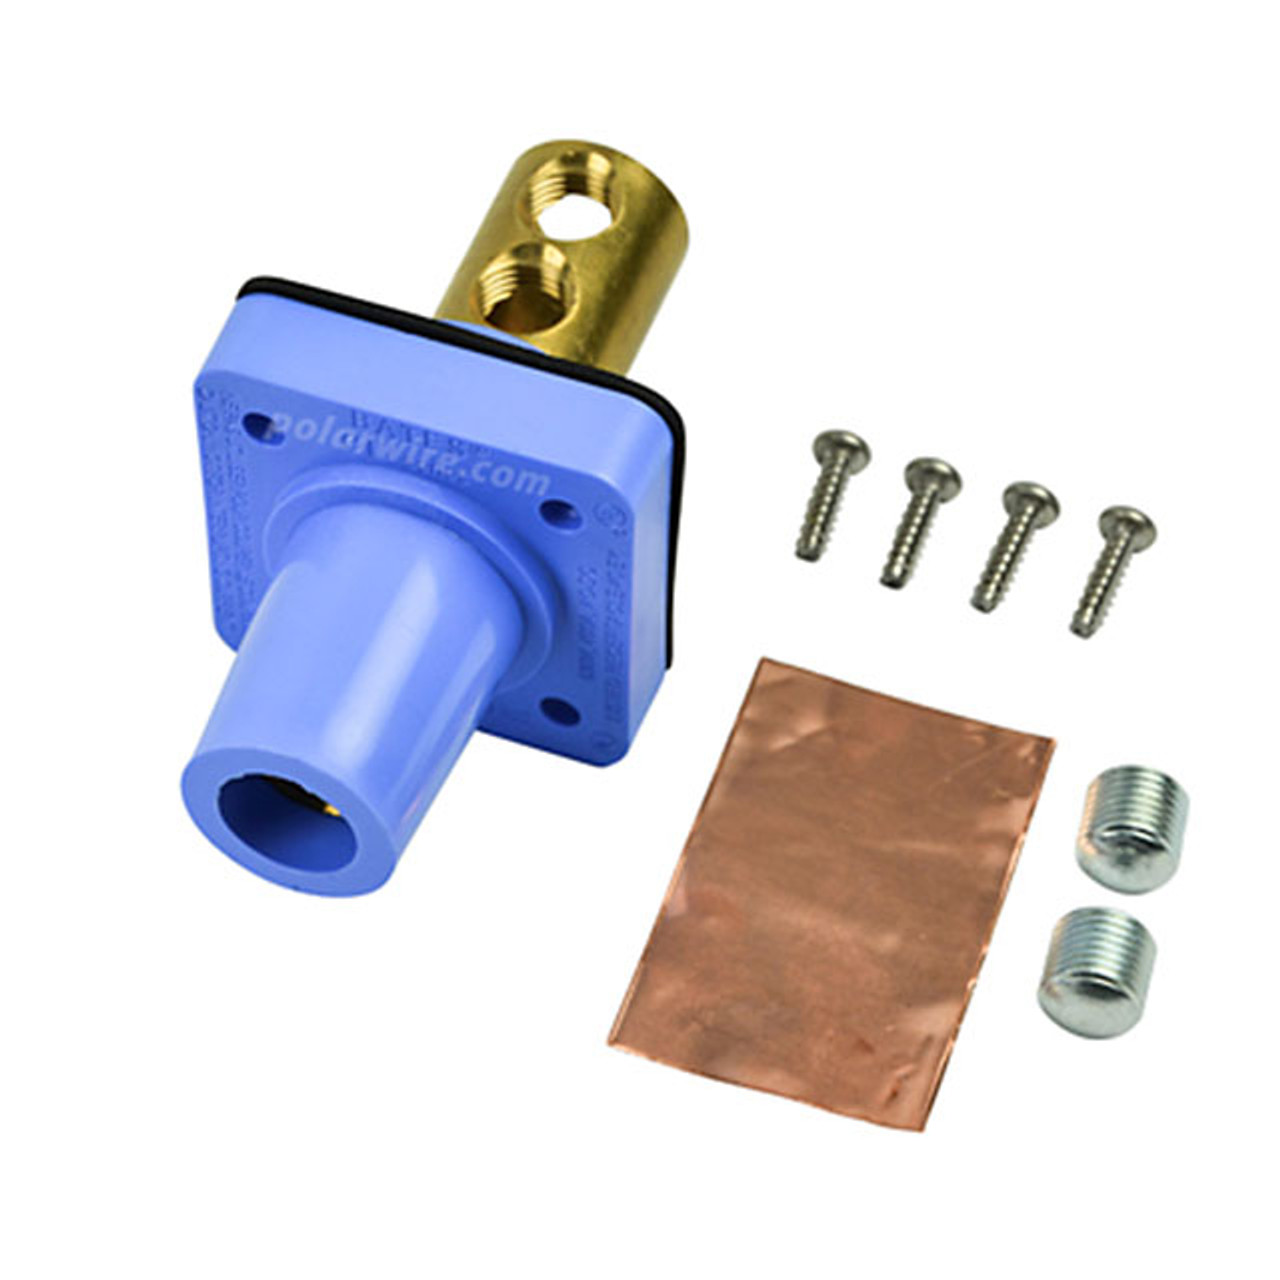 Marinco blue 400A CL 16 Series female single pin panel mount cam lock connector with set screw for 2/0-4/0 AWG cable